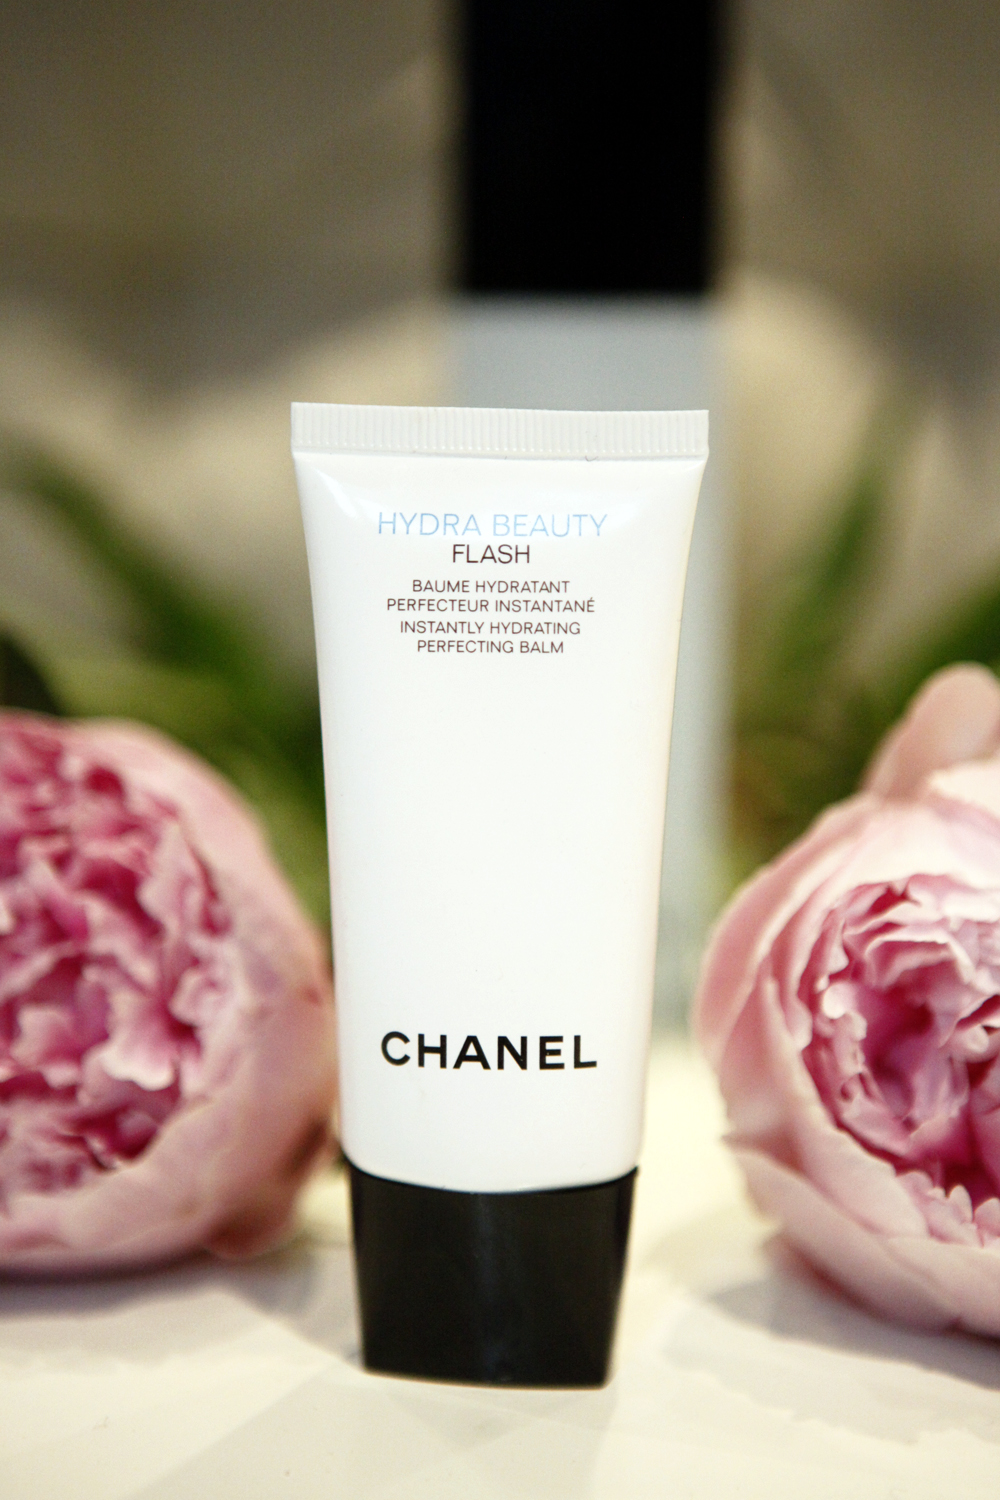 Chanel Hydra Beauty flash 2